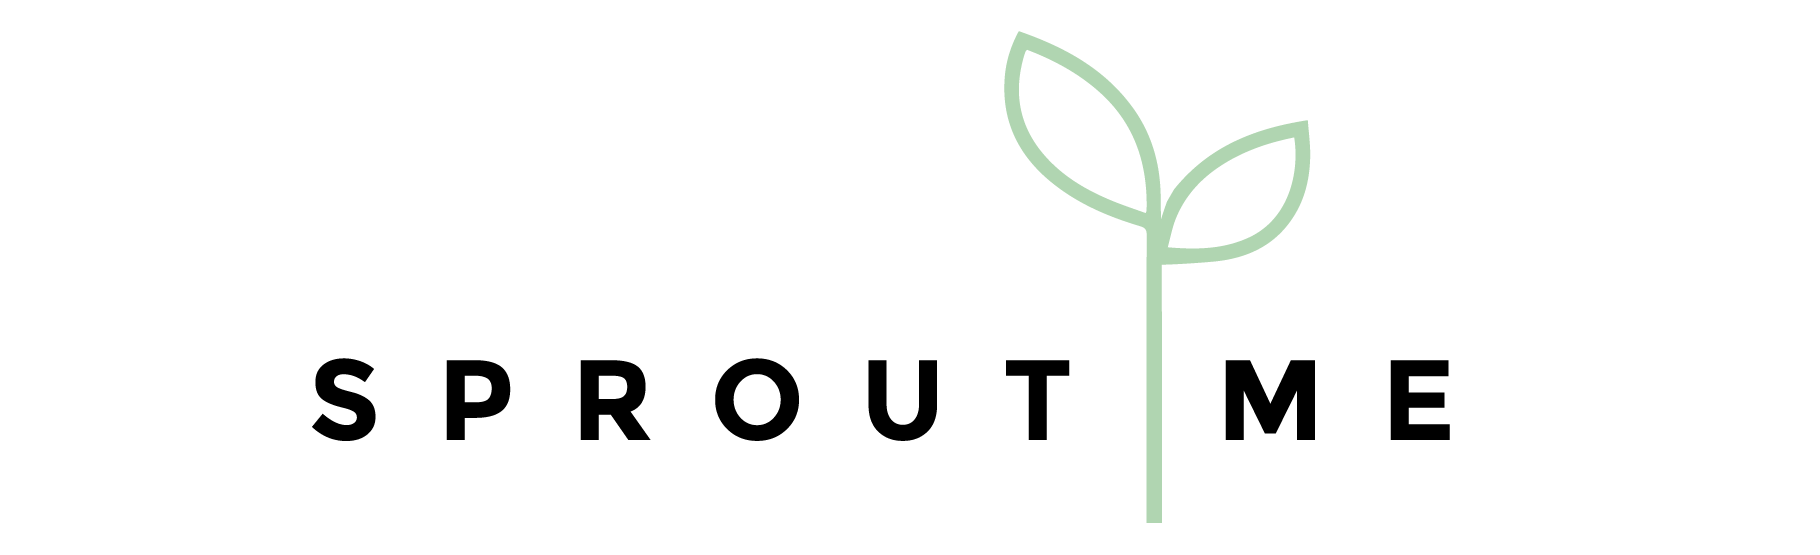 Sprout Me